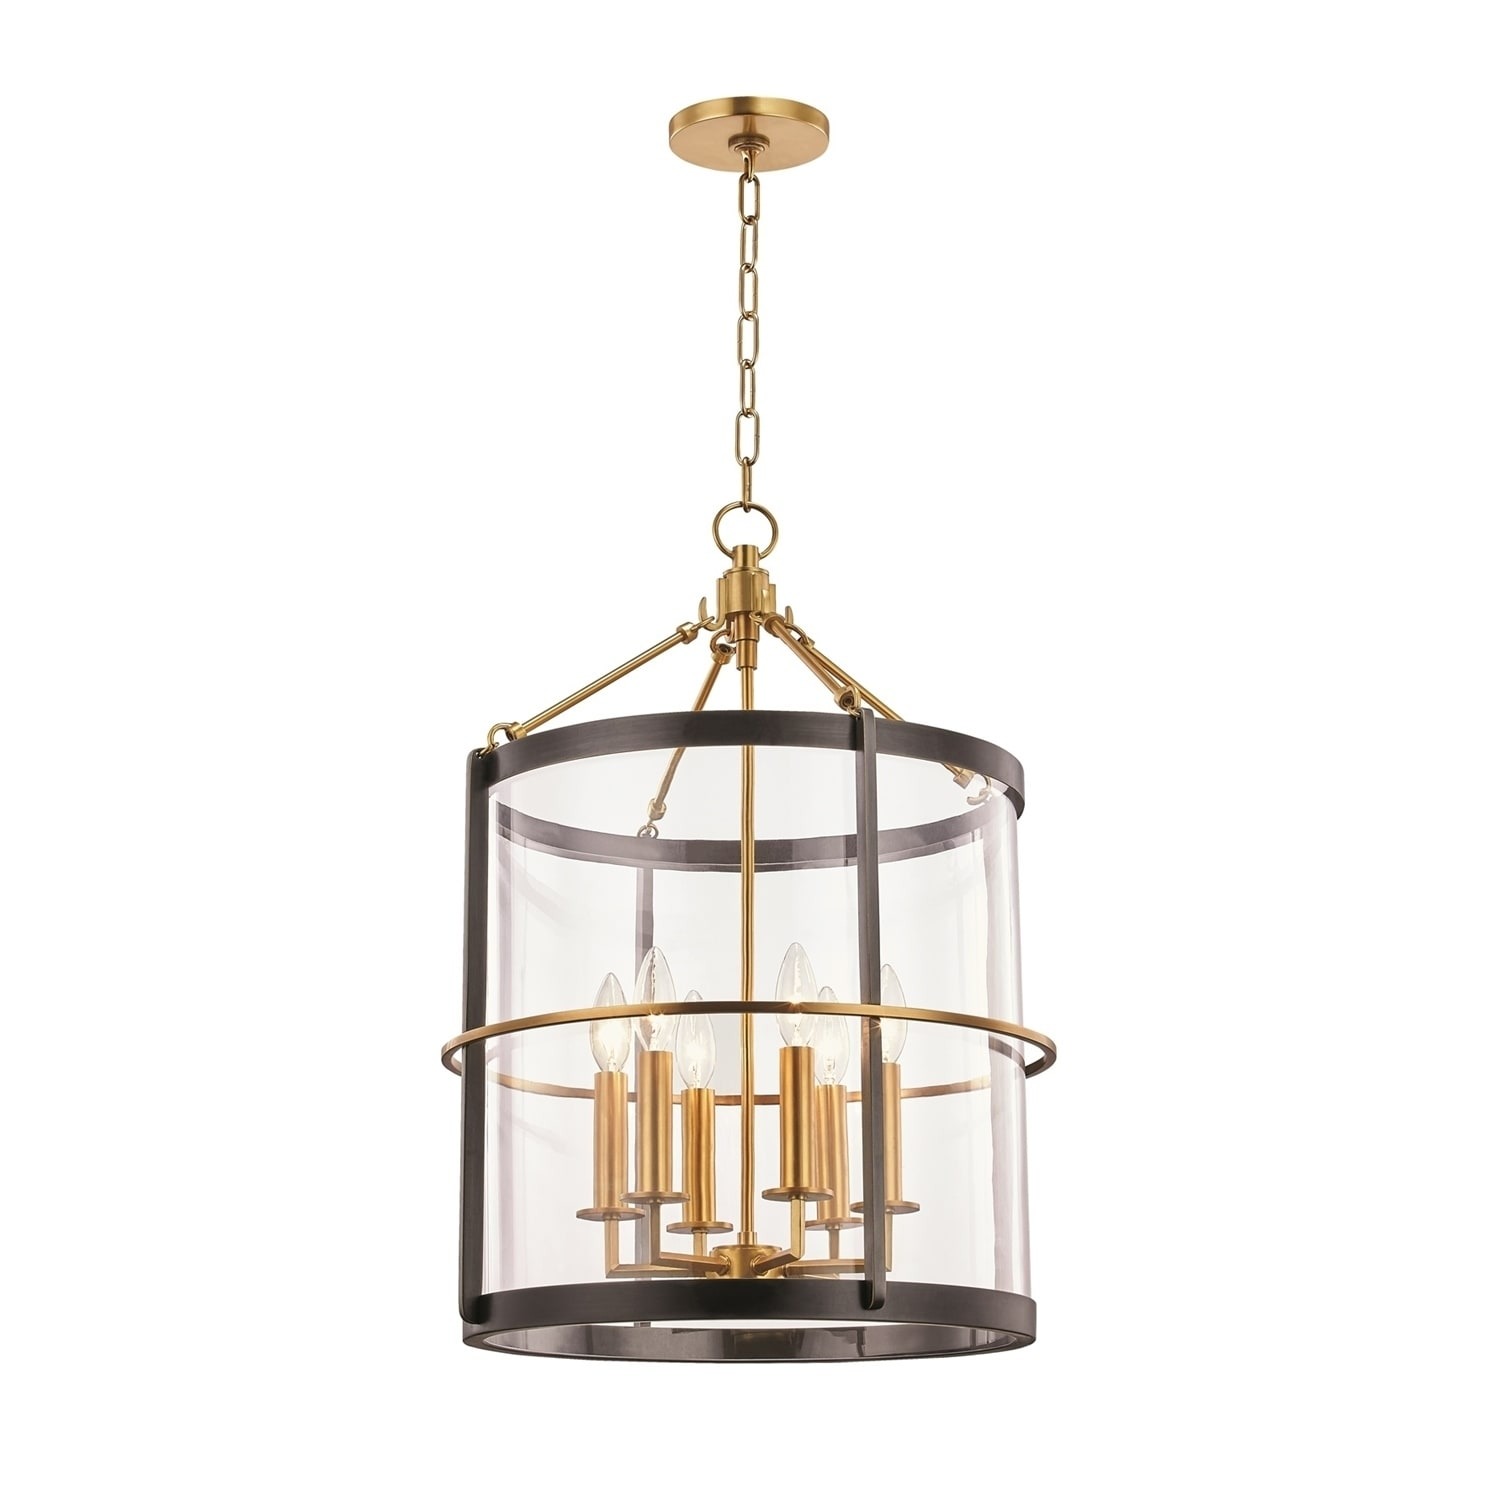 Ren by Becki Owens for Hudson Valley Lighting 6-light Aged Brass and Old Bronze Large Pendant, Clear Glass